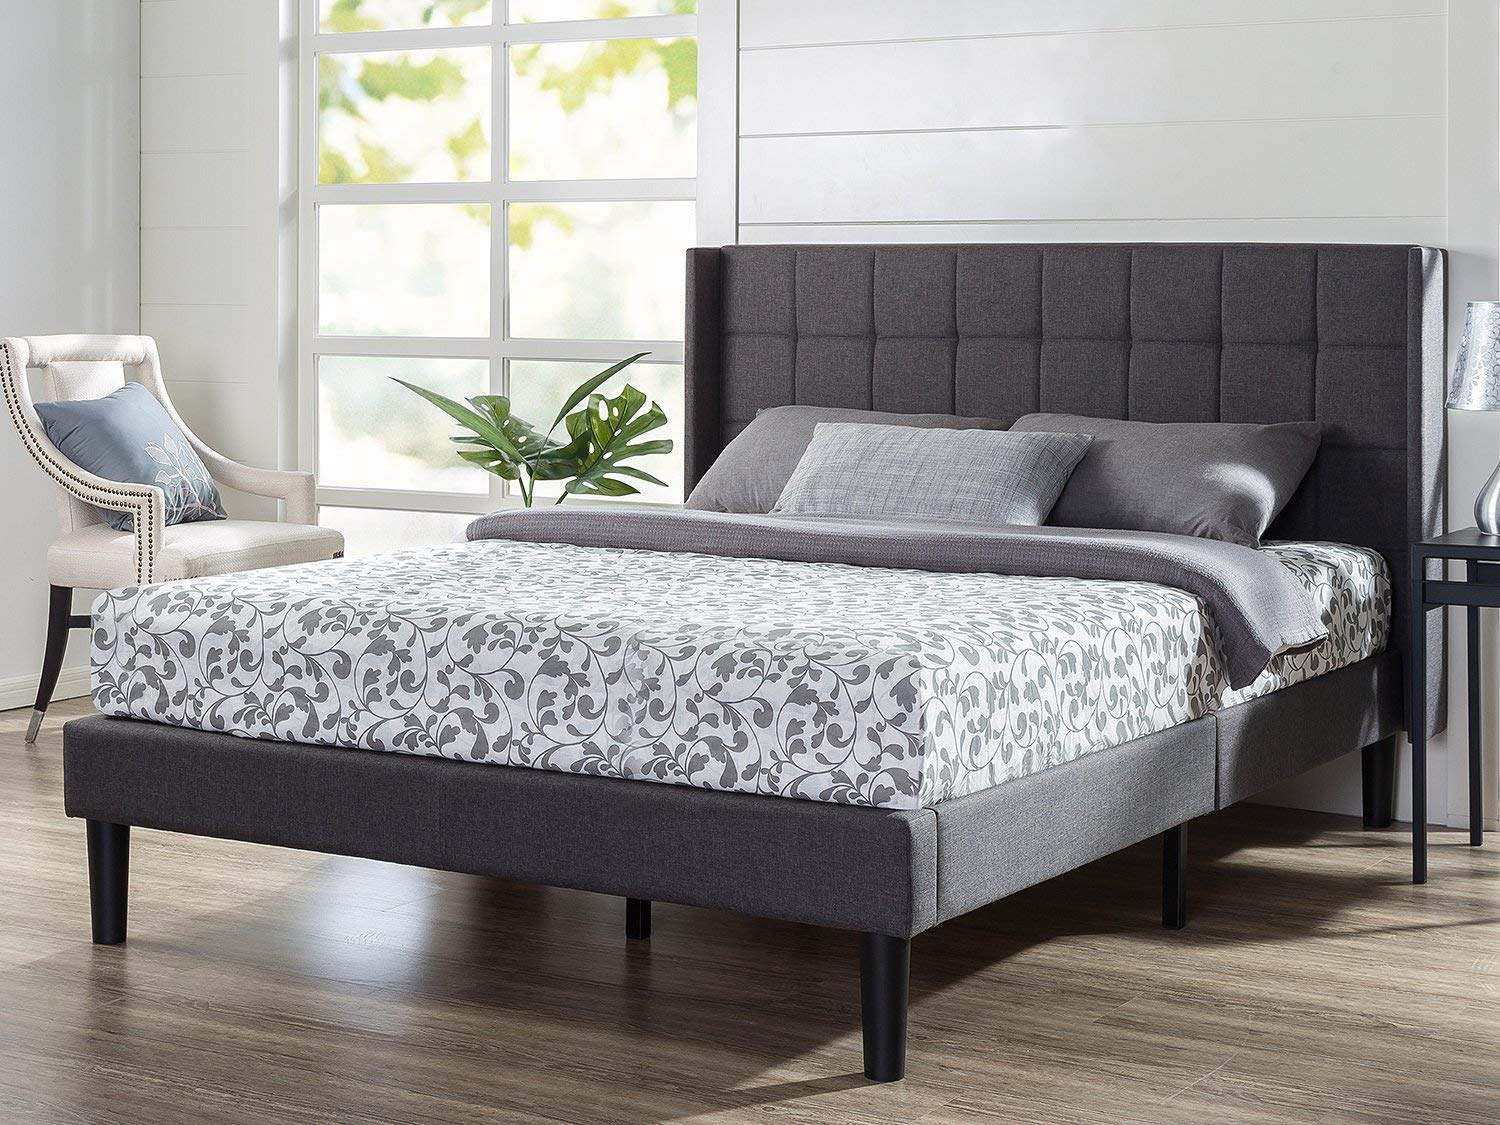 The Best Zinus Upholstered Platform Beds In 2019 A